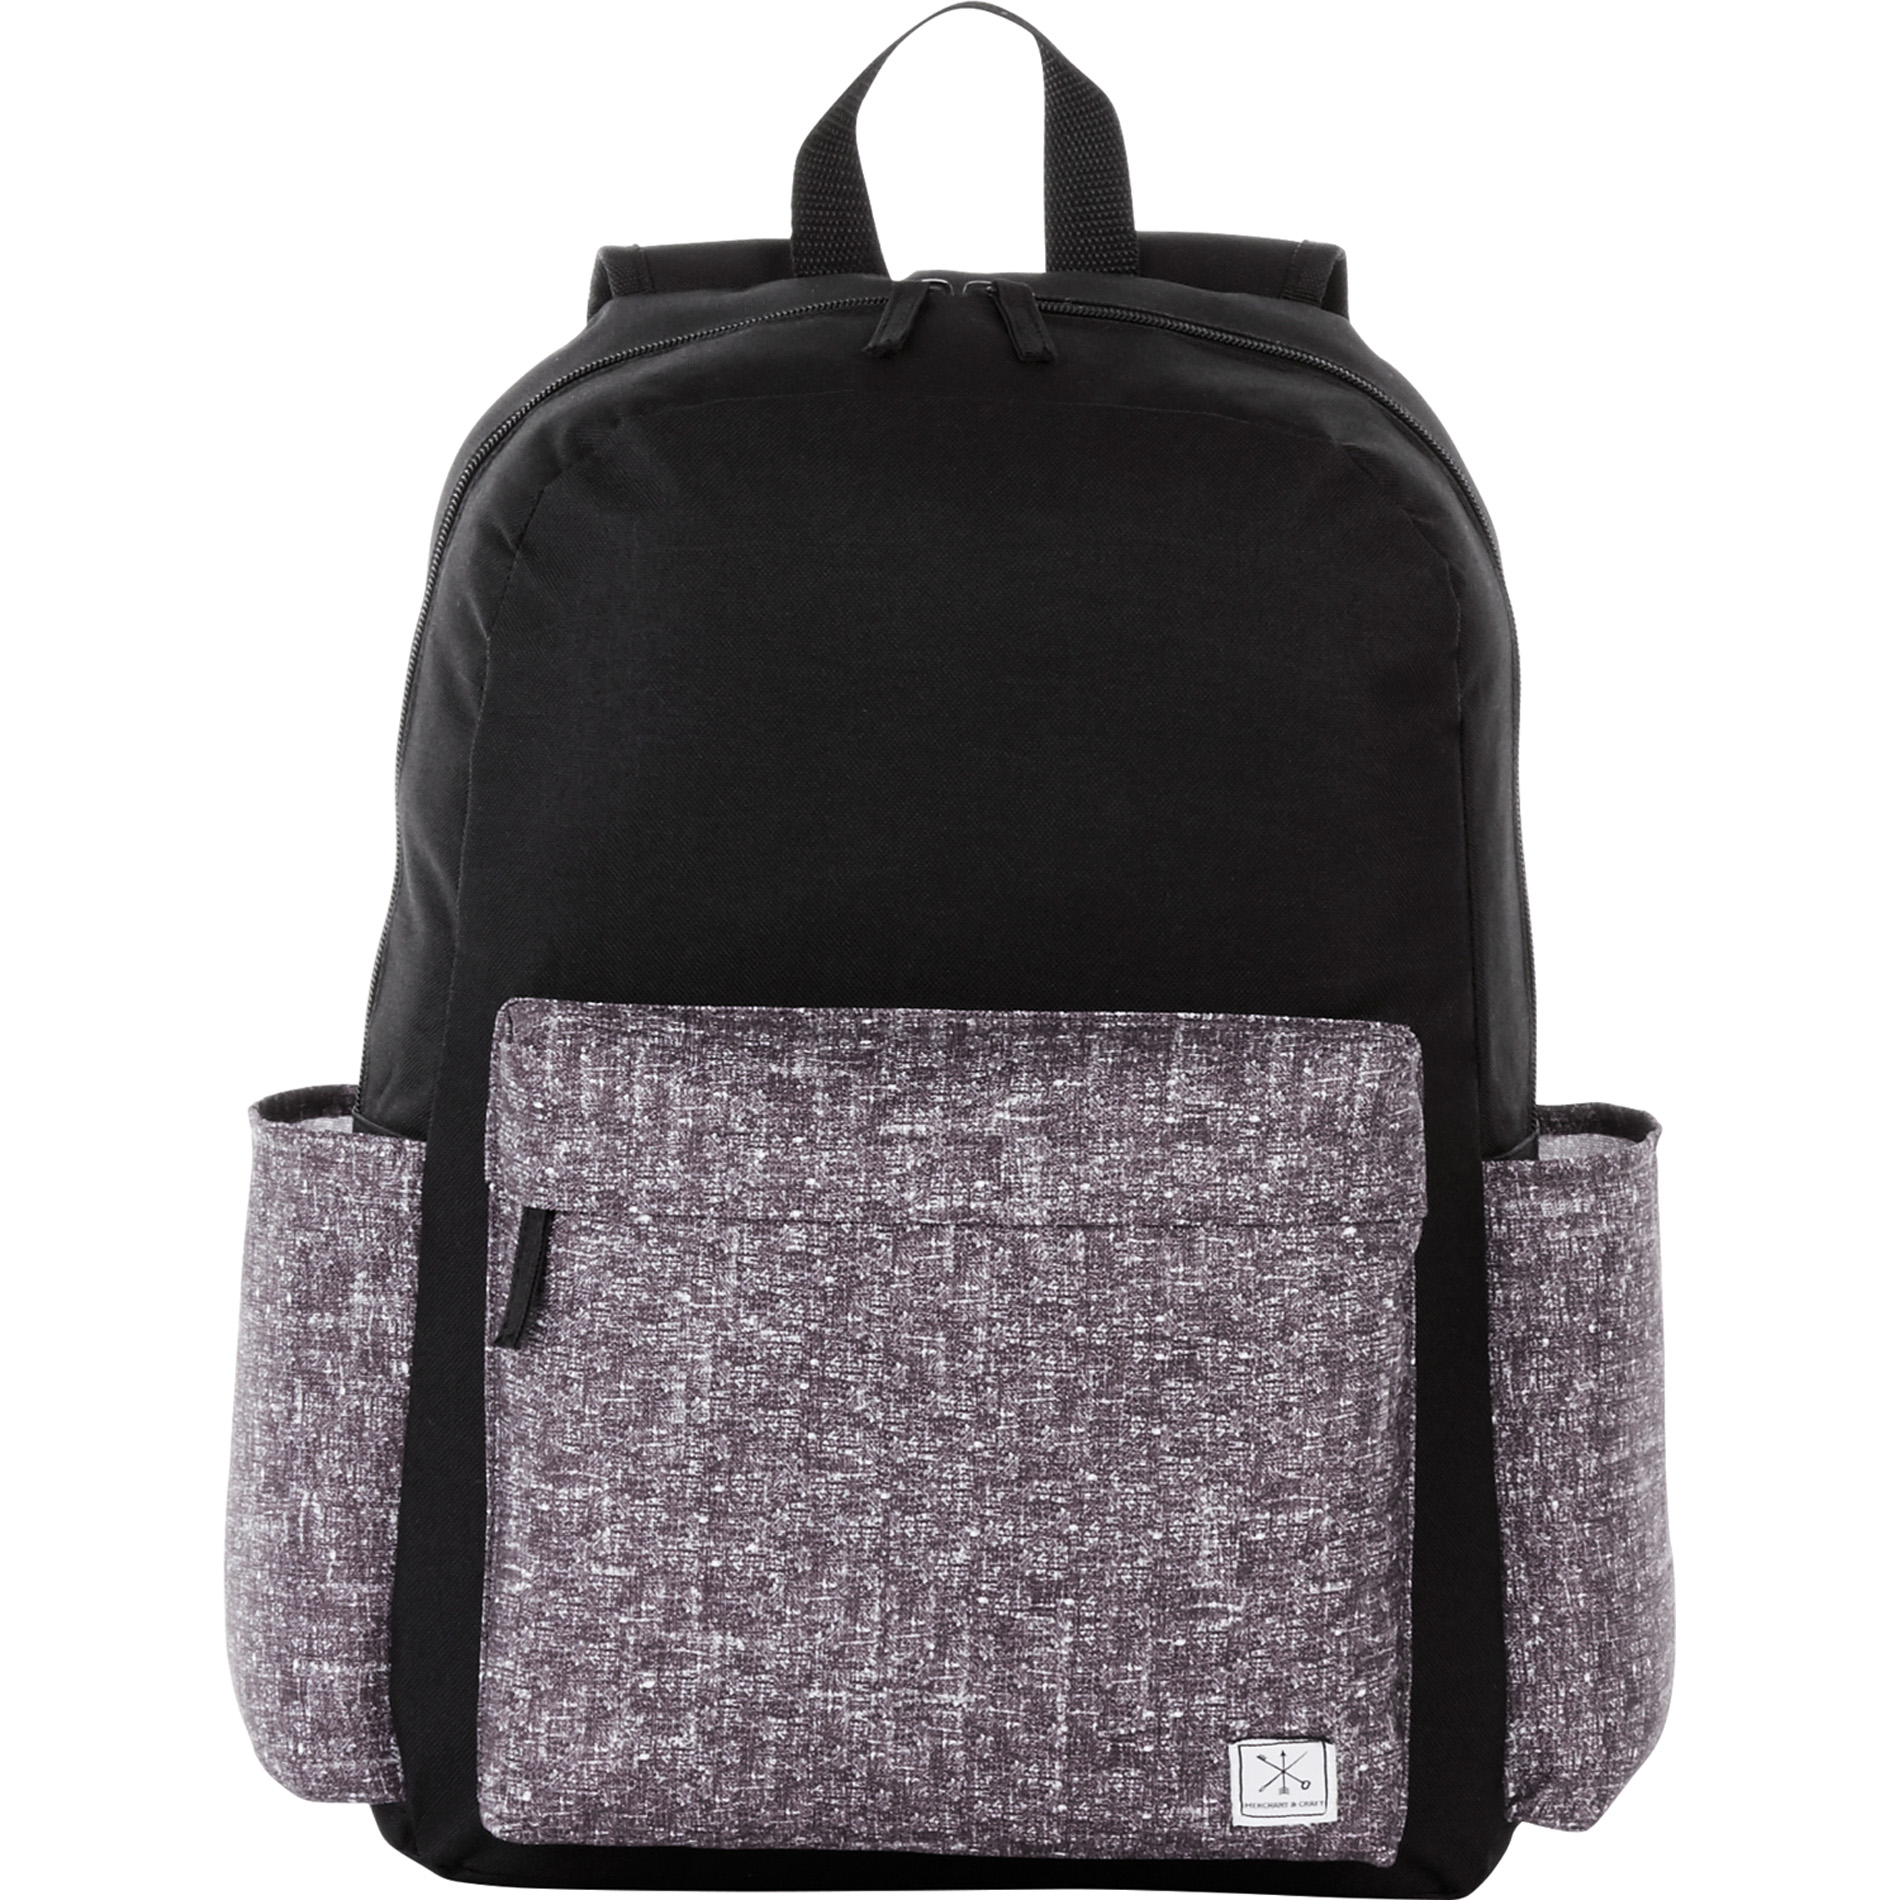 "Merchant & Craft 3750-13 - Slade 15"" Computer Backpack"